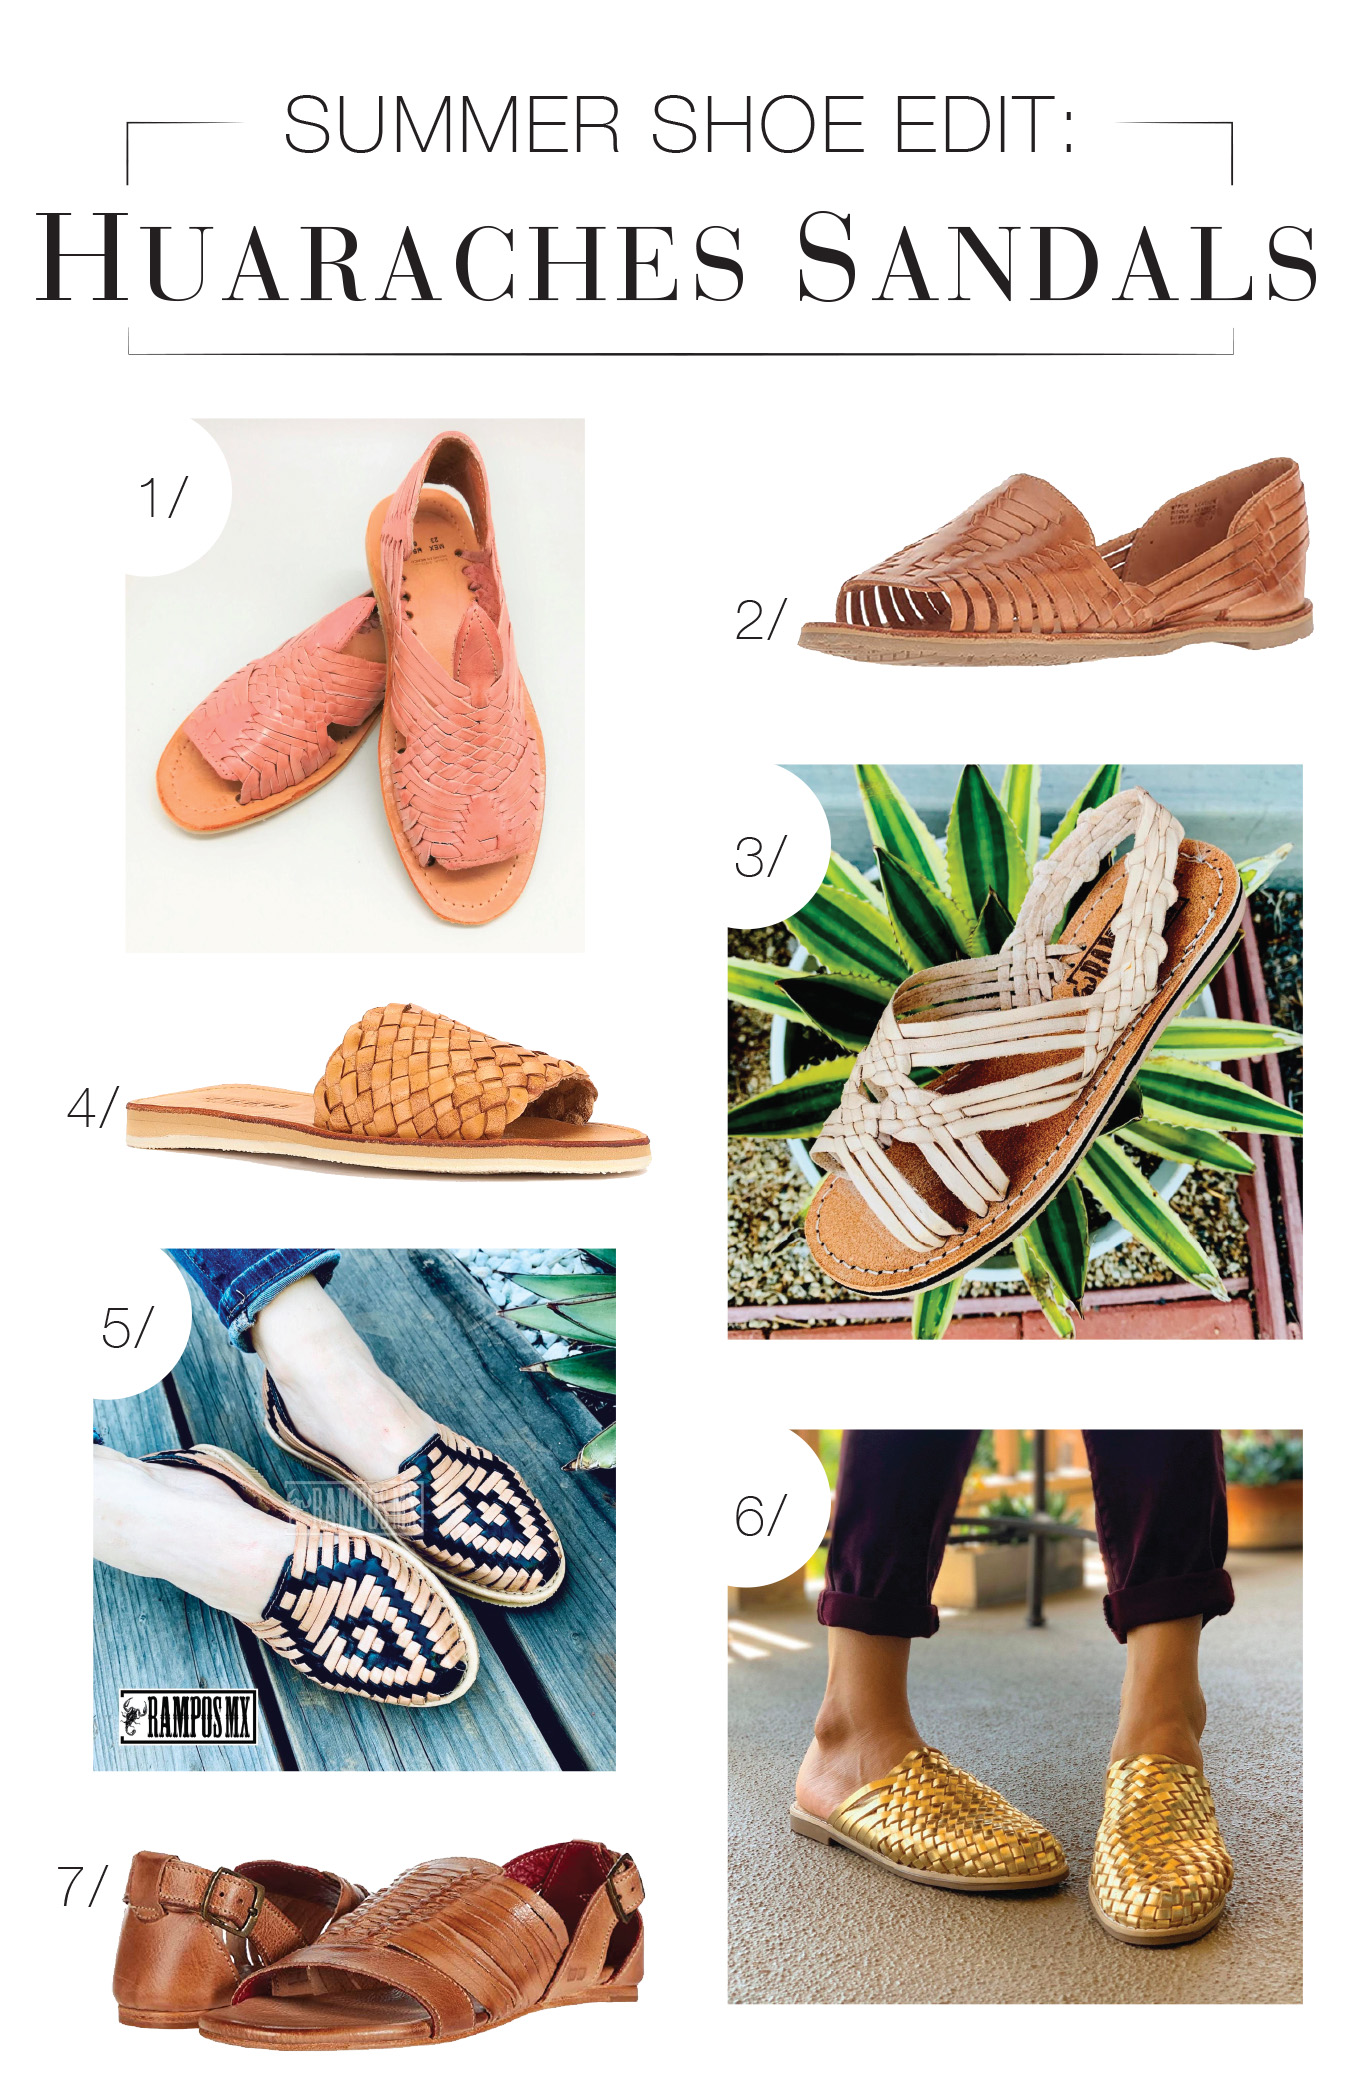 """I've had various woven sandals that were cute, but nothing like classic huaraches. Here's our roundup: some handmade from Etsy & some """"inspired-by"""" styles."""